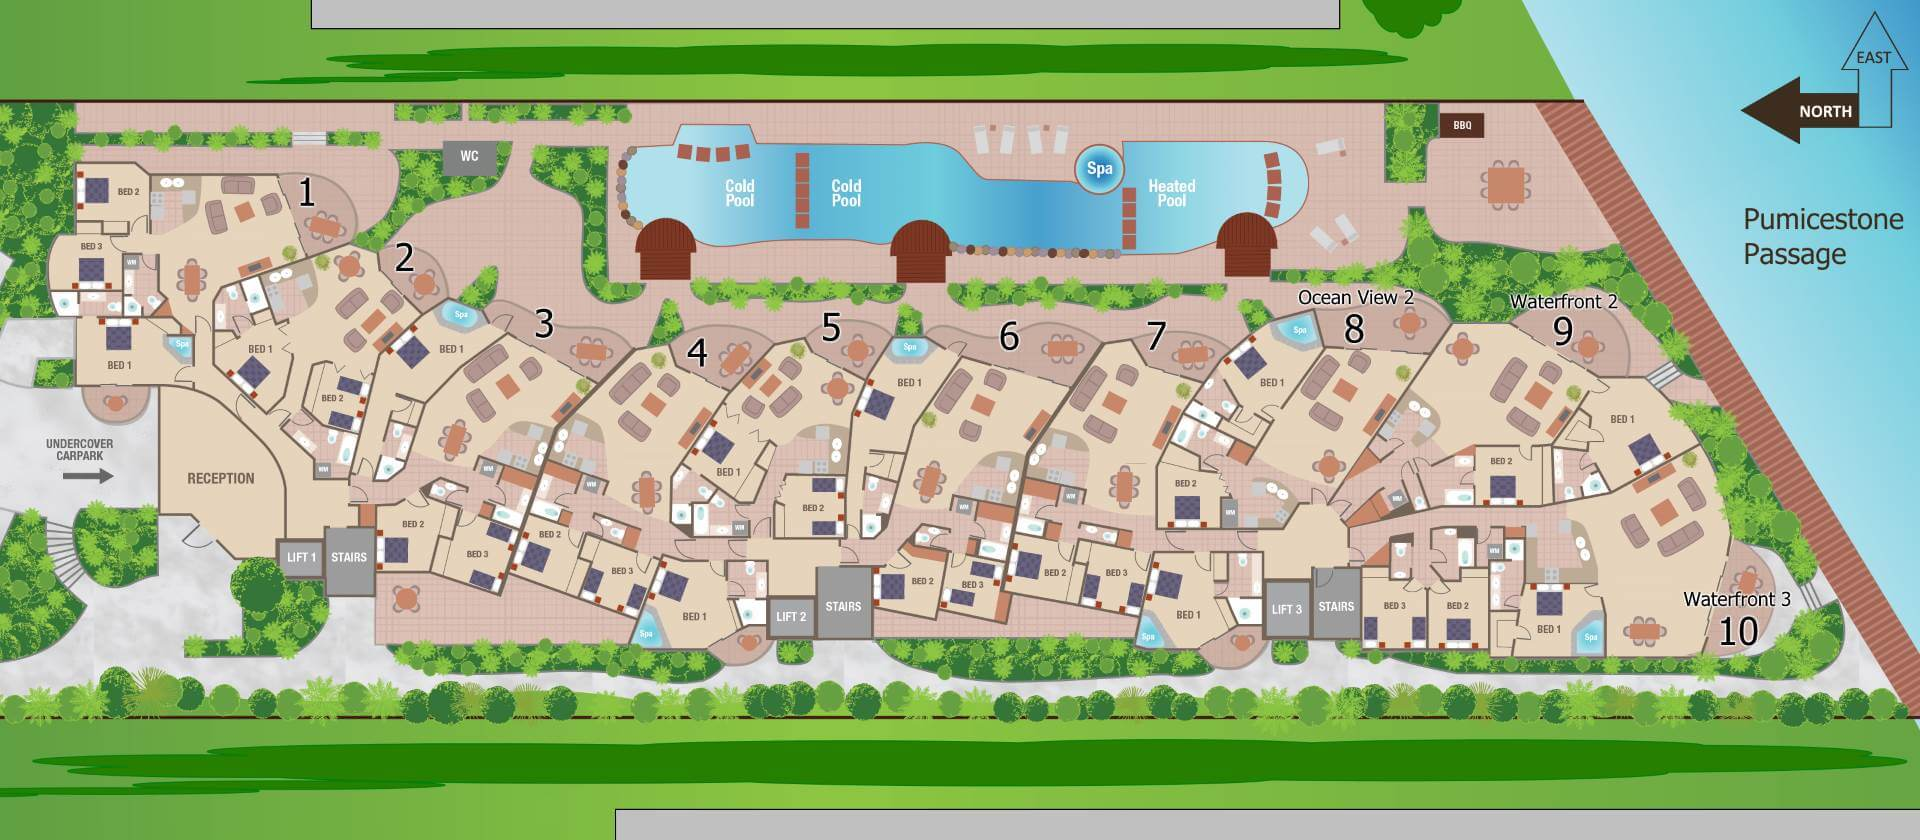 Watermark Resort Siteplan